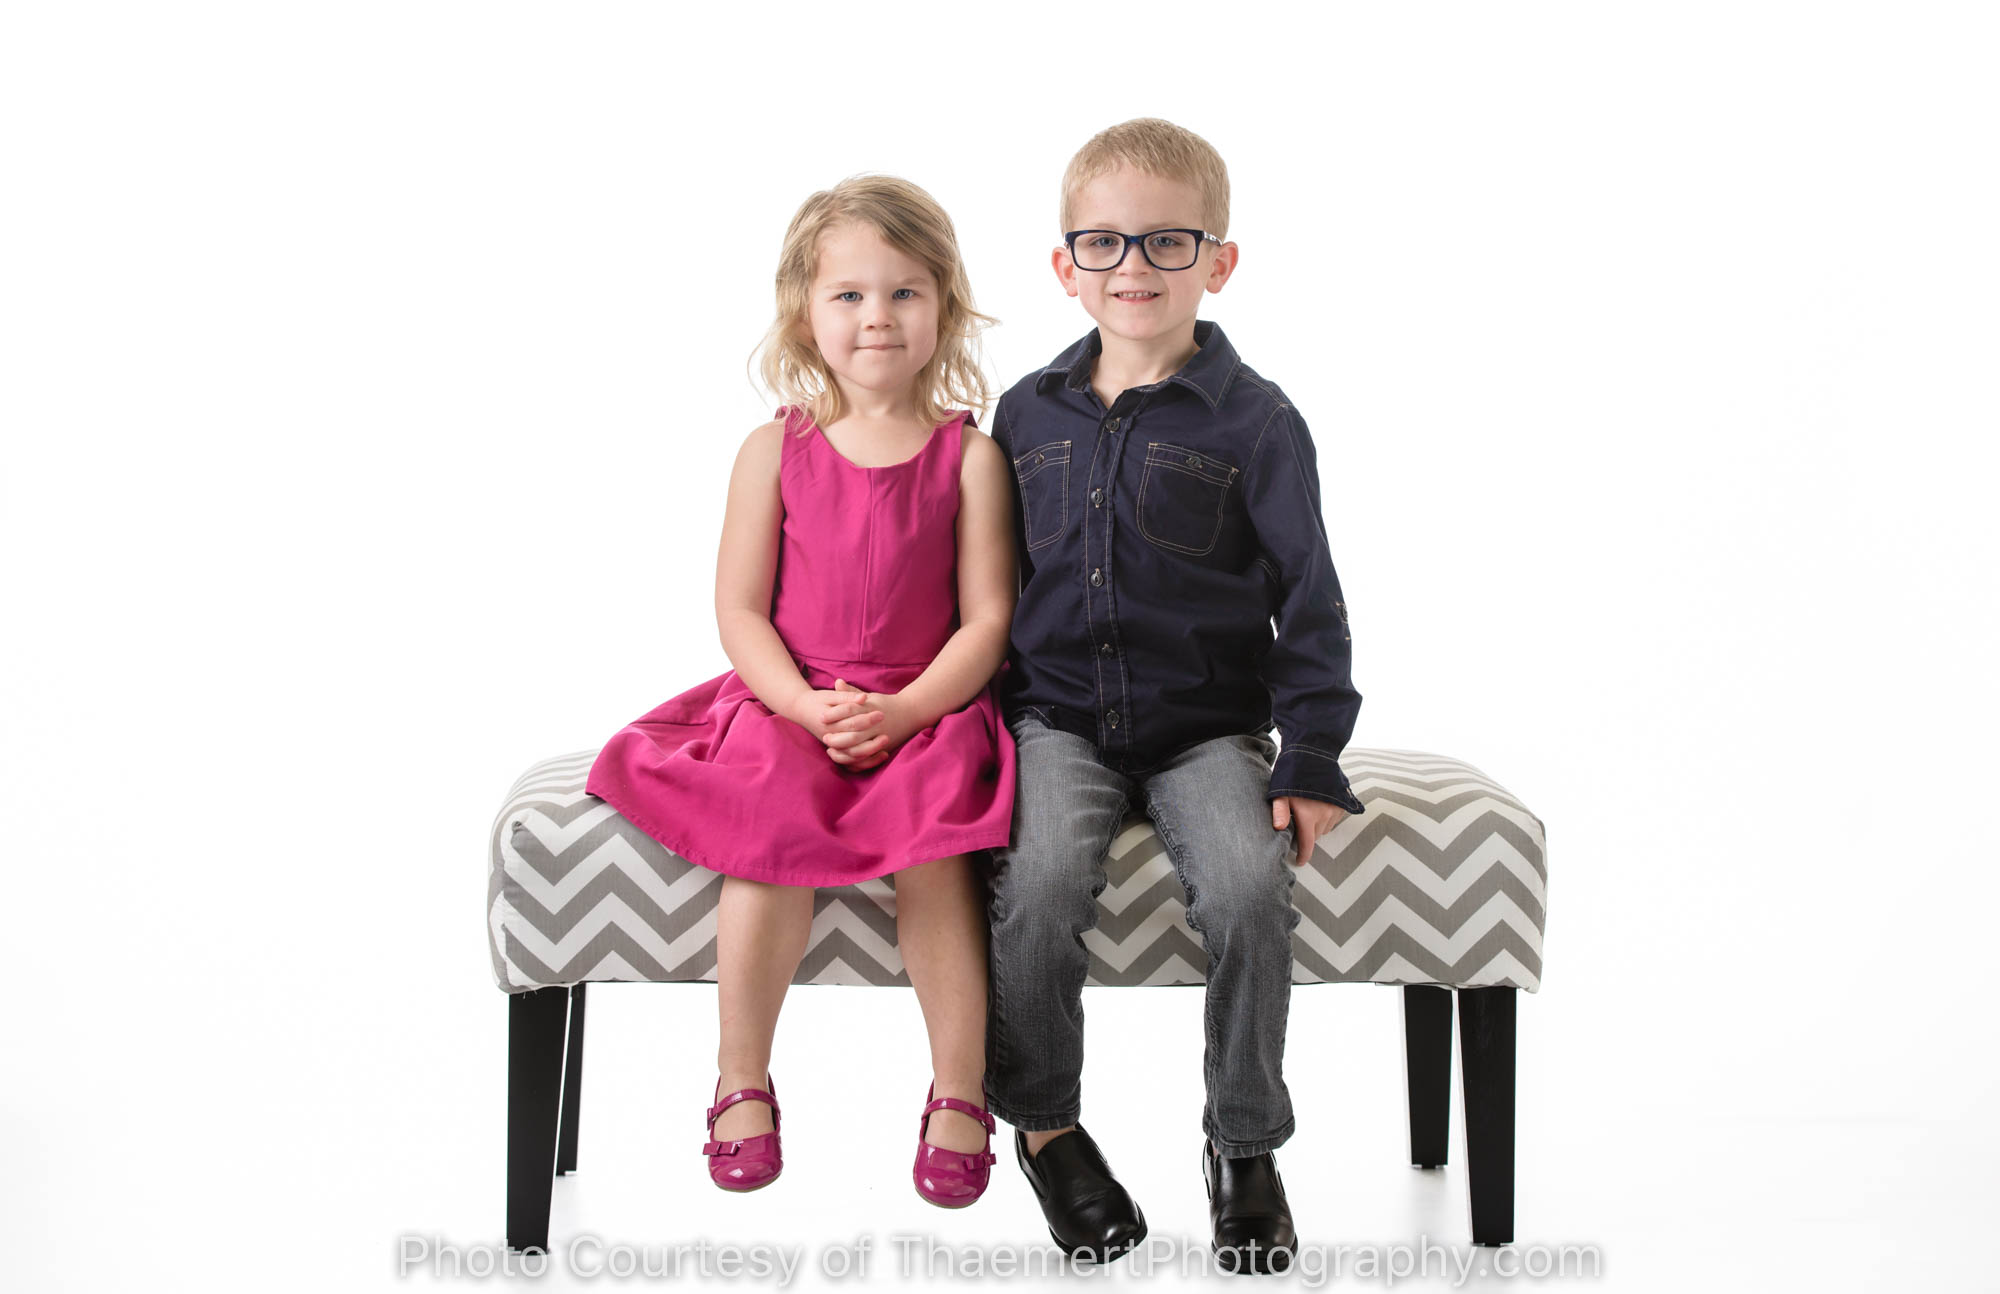 Siblings pose for St Charles Kids Photographer in the studio